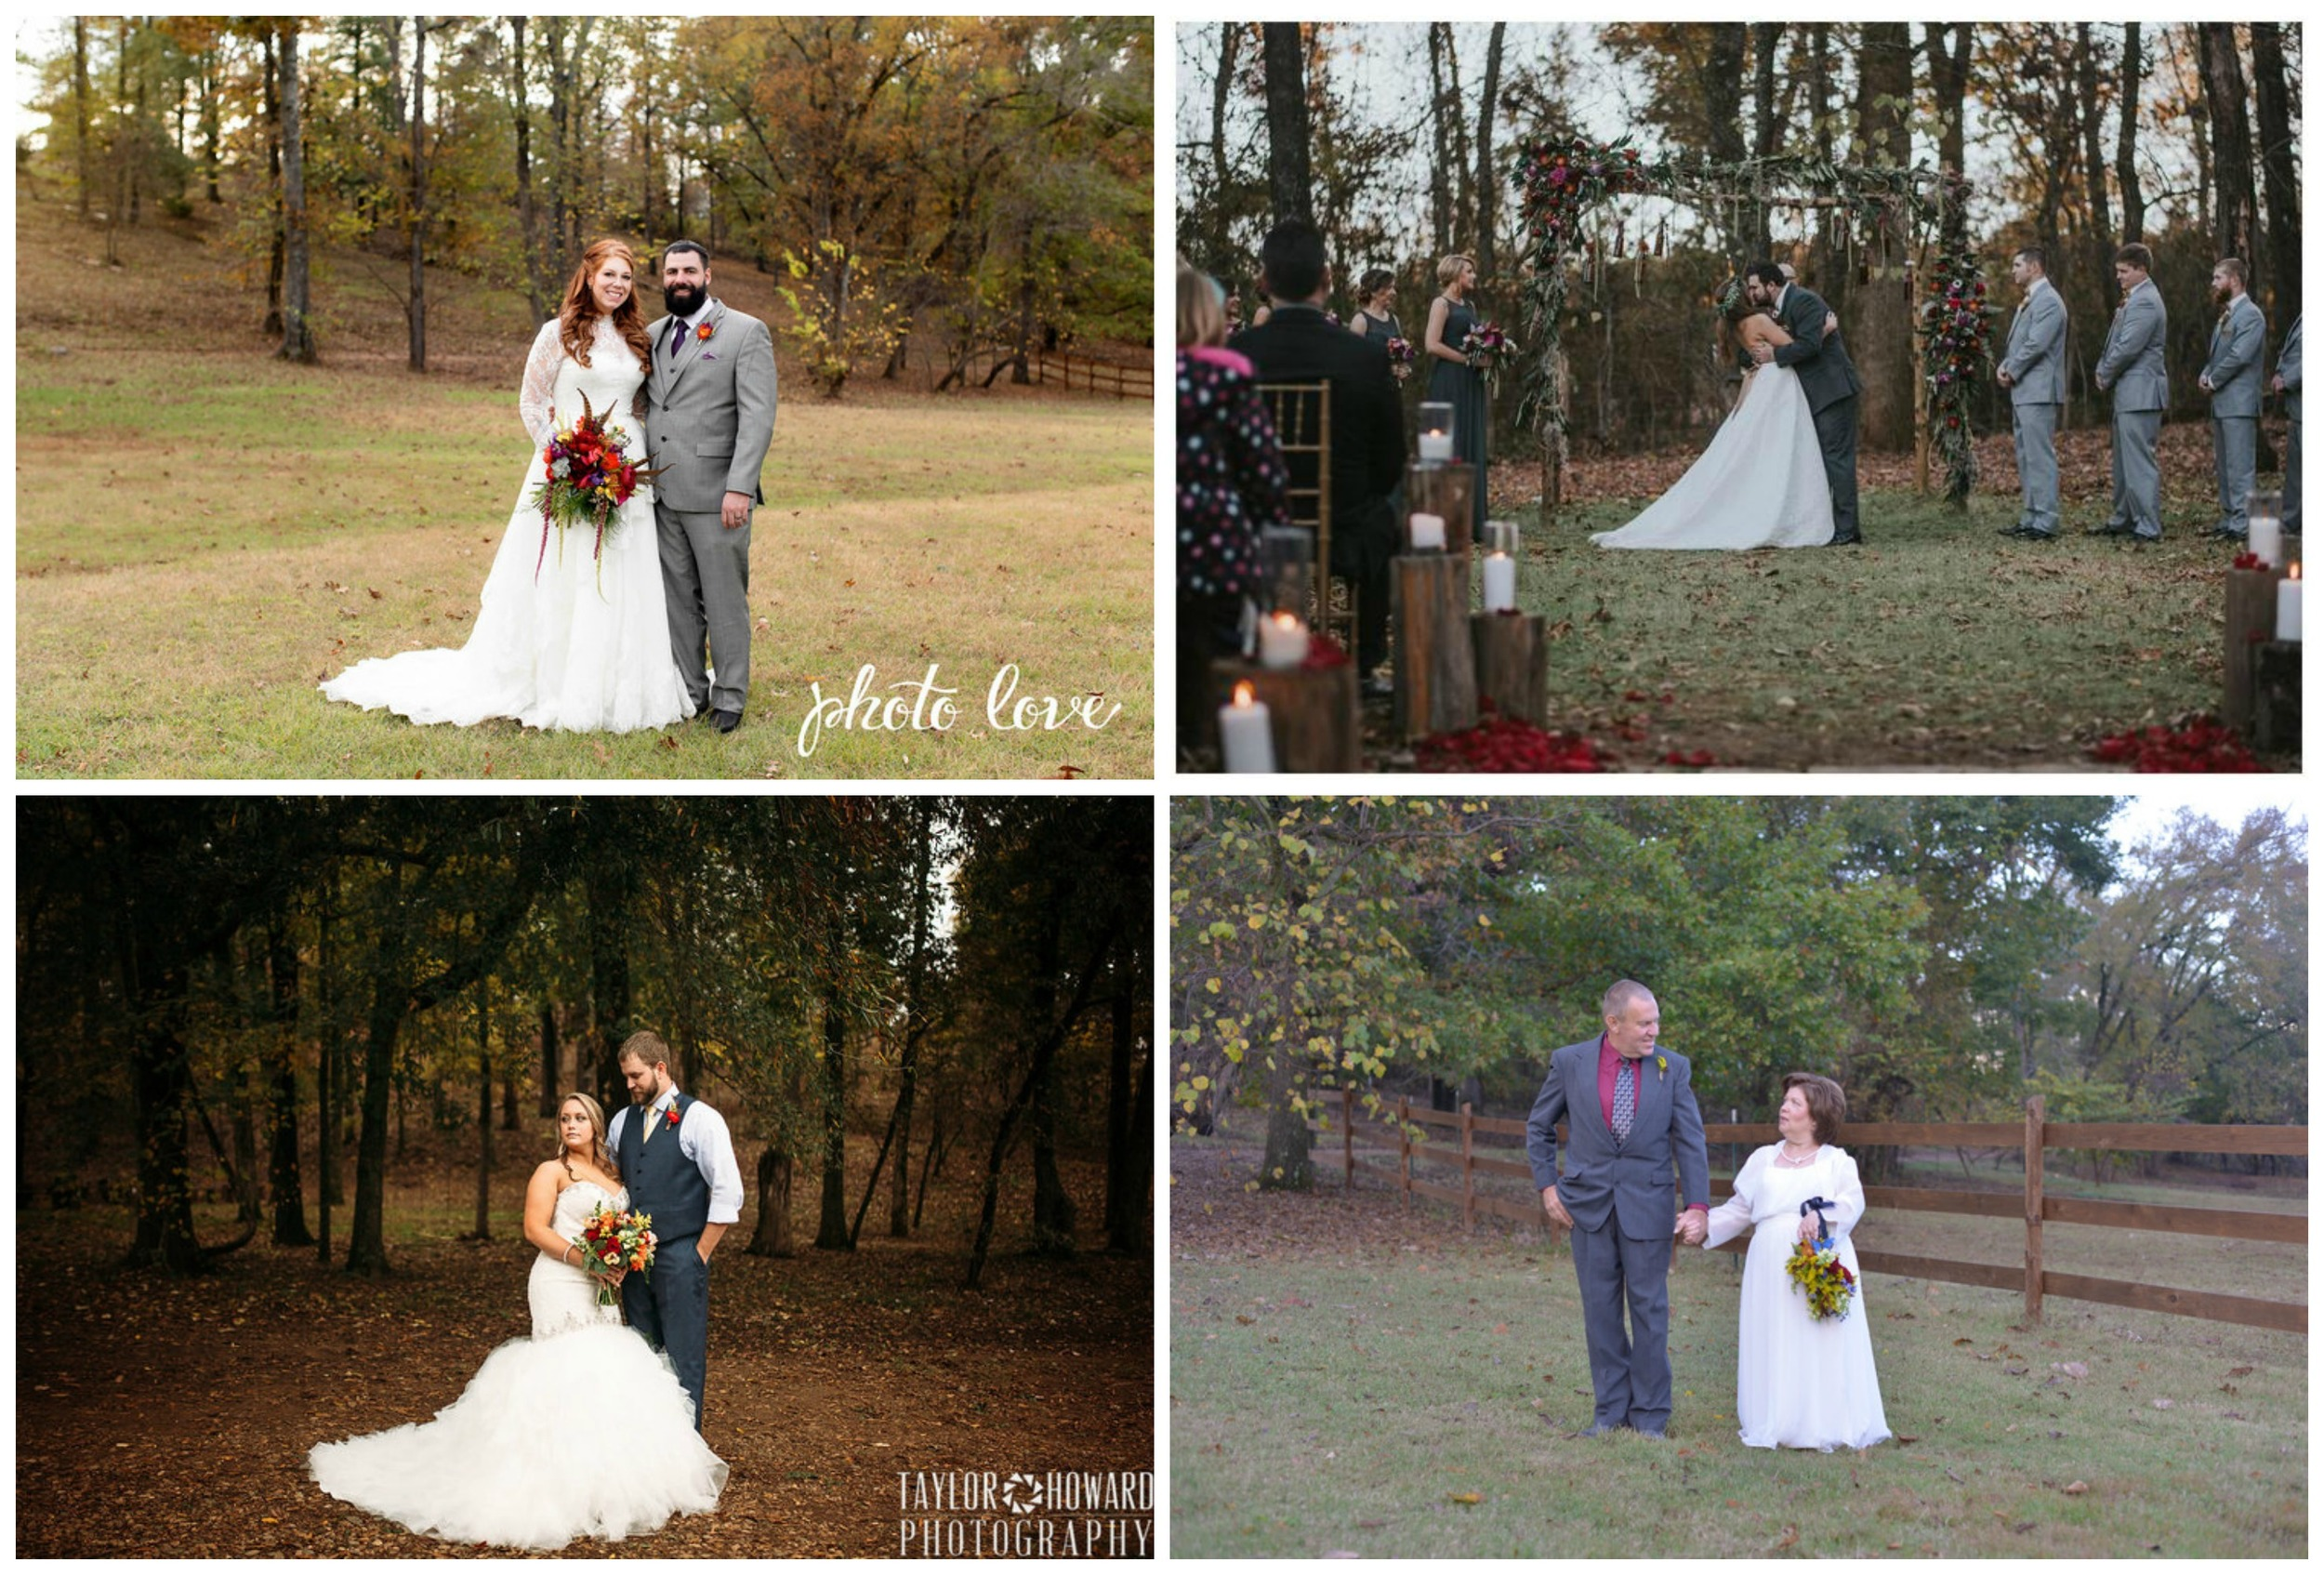 Photo Love ;  B.Matthews Creative ;  Taylor Howard Photography ;  Photos by Manda